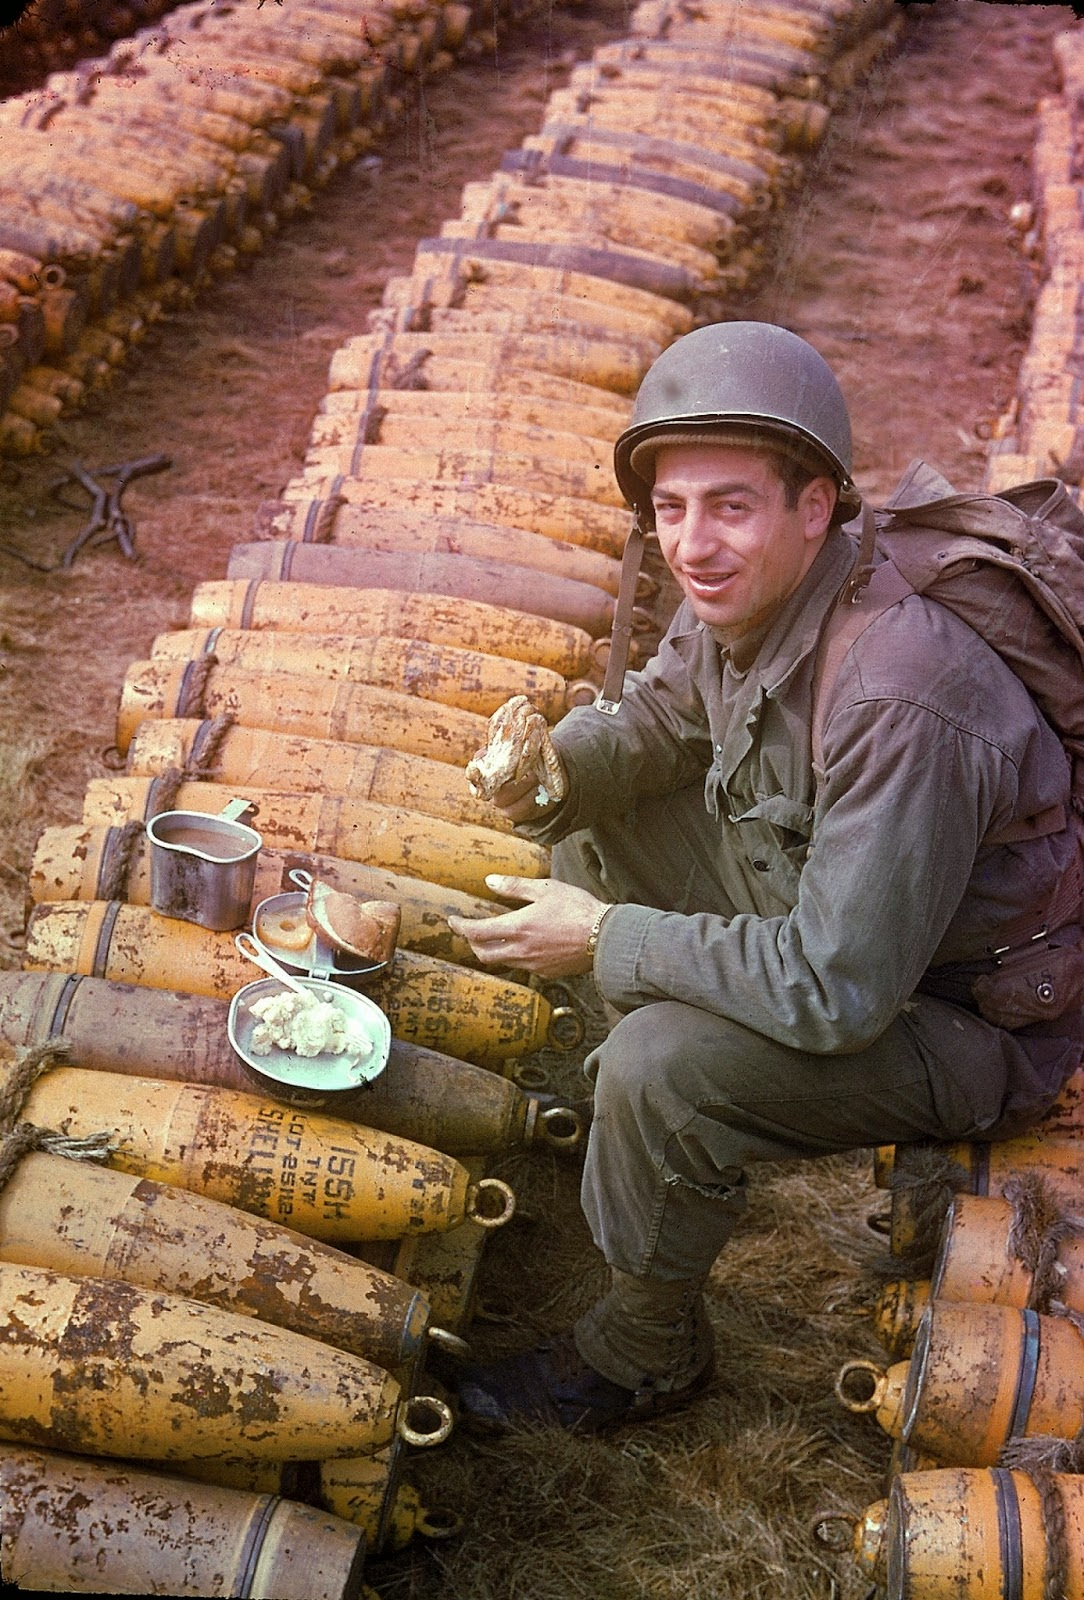 27 Rare Color Photographs From World War II